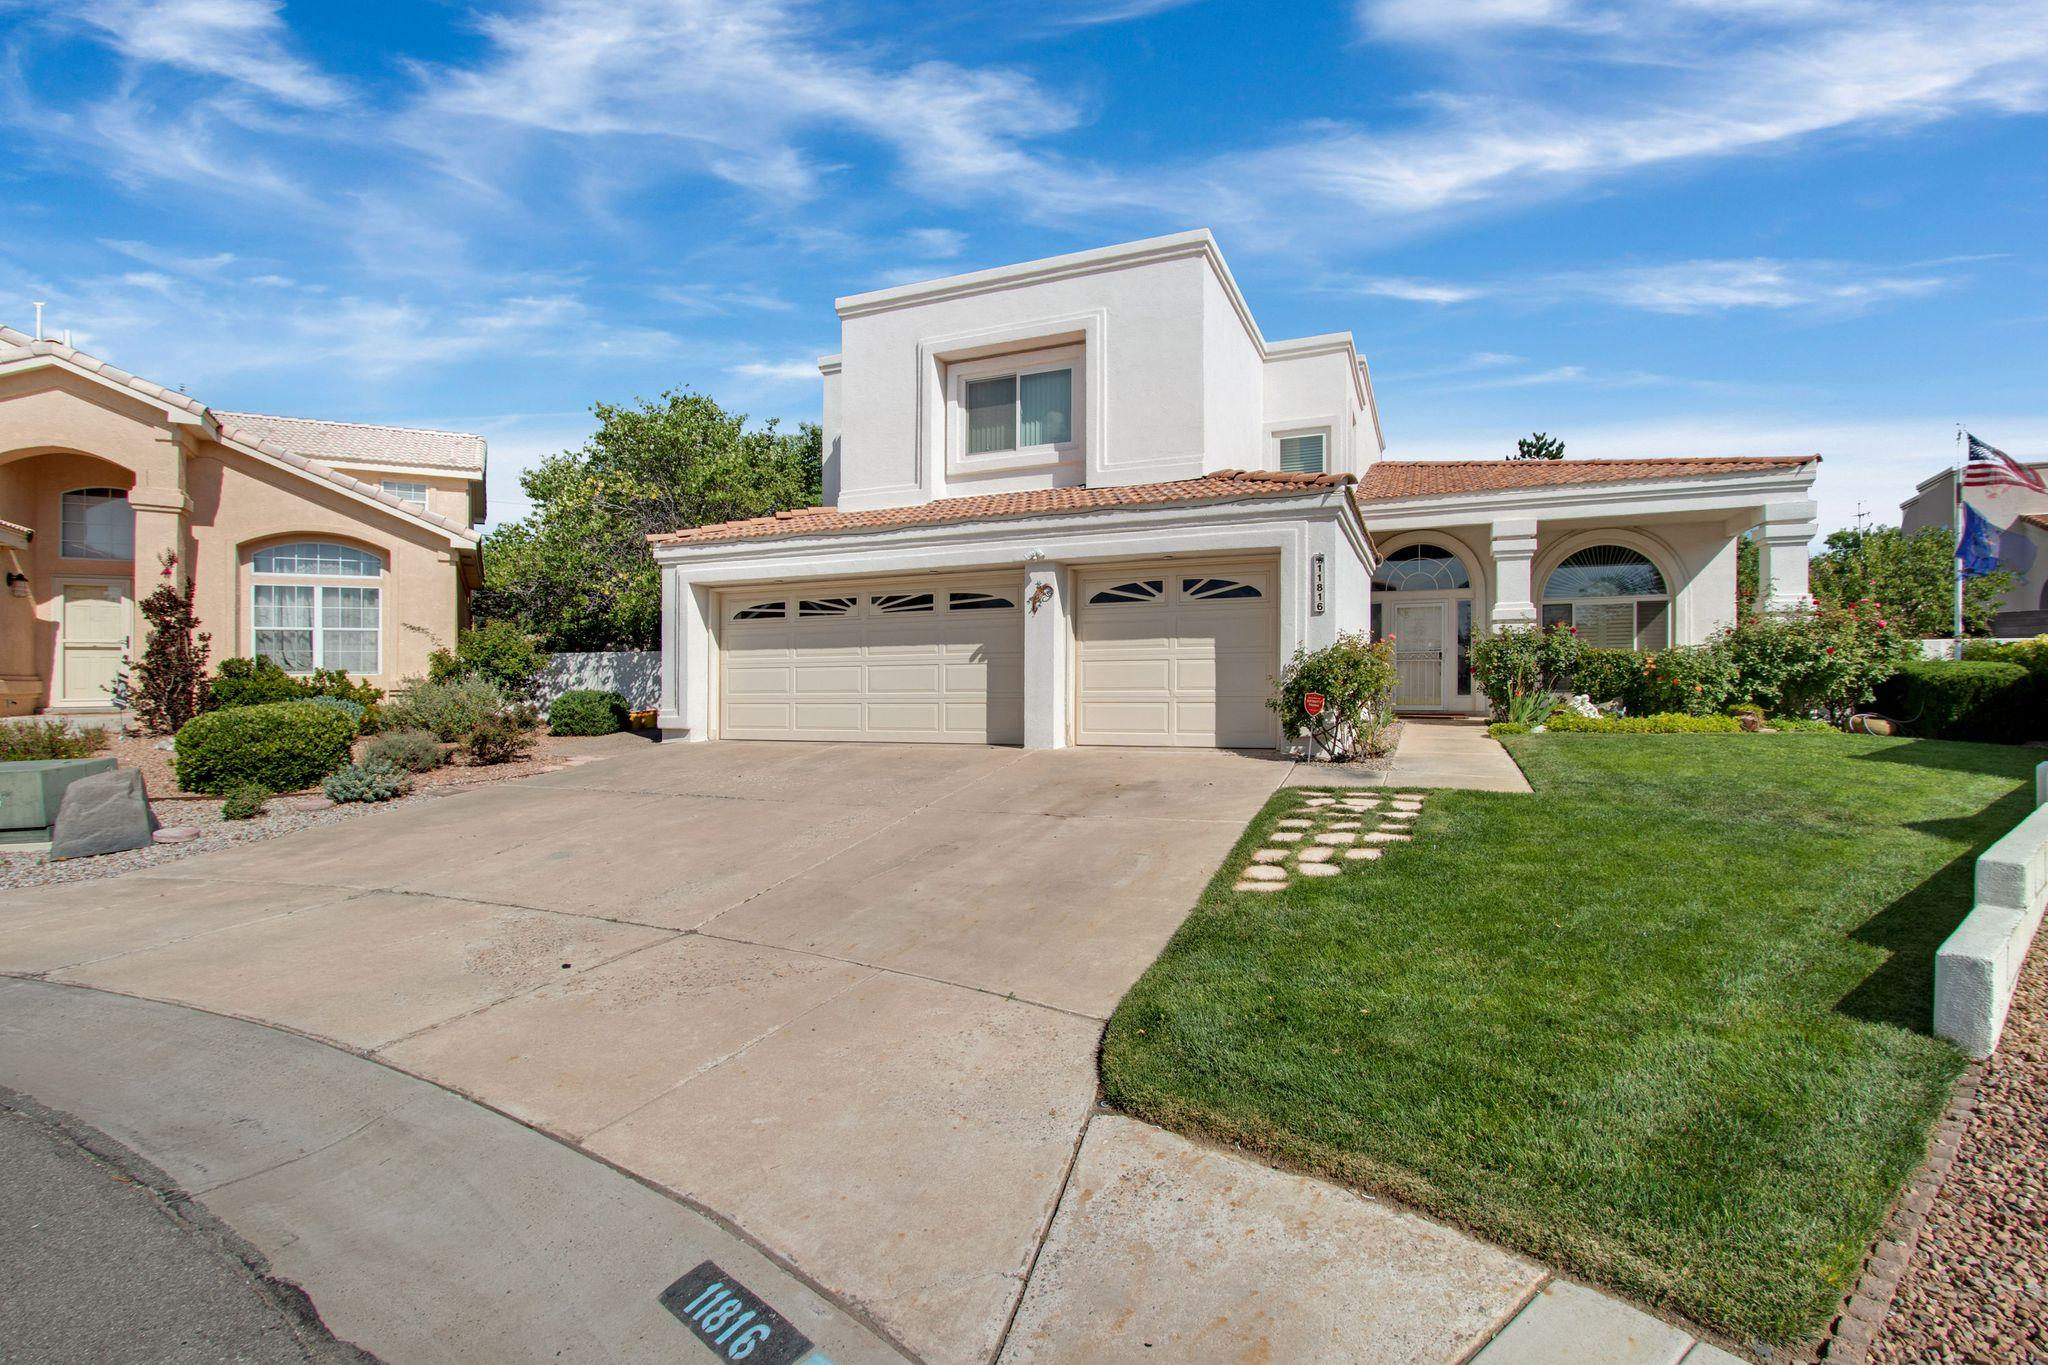 You will have a hard time finding a more well cared for home than this Charter masterpiece.  When you first enter the home you are greeted with high ceilings, large windows with plantation shutters and nice architectural features.  The kitchen has granite, stainless Kitchen Aid appliances, an island, and a pantry. From here you can enjoy backyard cookouts with a large covered patio and a backyard that could be featured in Better Homes and Garden.  The downstairs finishes off with a breakfast nook, a den, and downstairs office that could also be a fourth bedroom.  Upstairs you will find a nice open loft, two more bedrooms and the master suite which has a three way fireplace, jetted tub, large walk-in closet and a patio which overlooks the backyard and the Sandias. Call your Realtor Now!